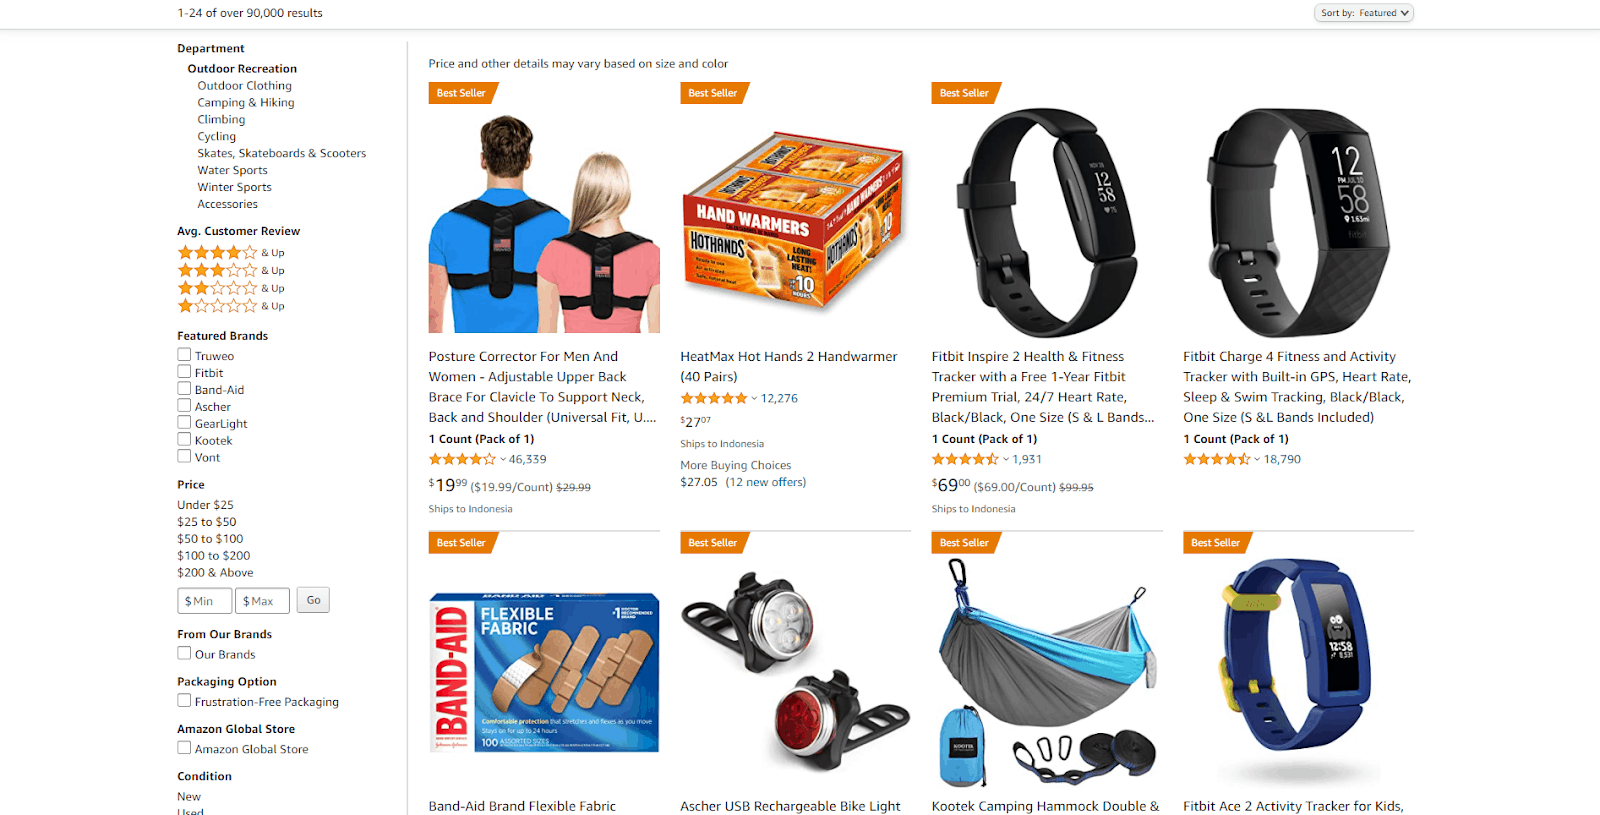 Amazon's product list